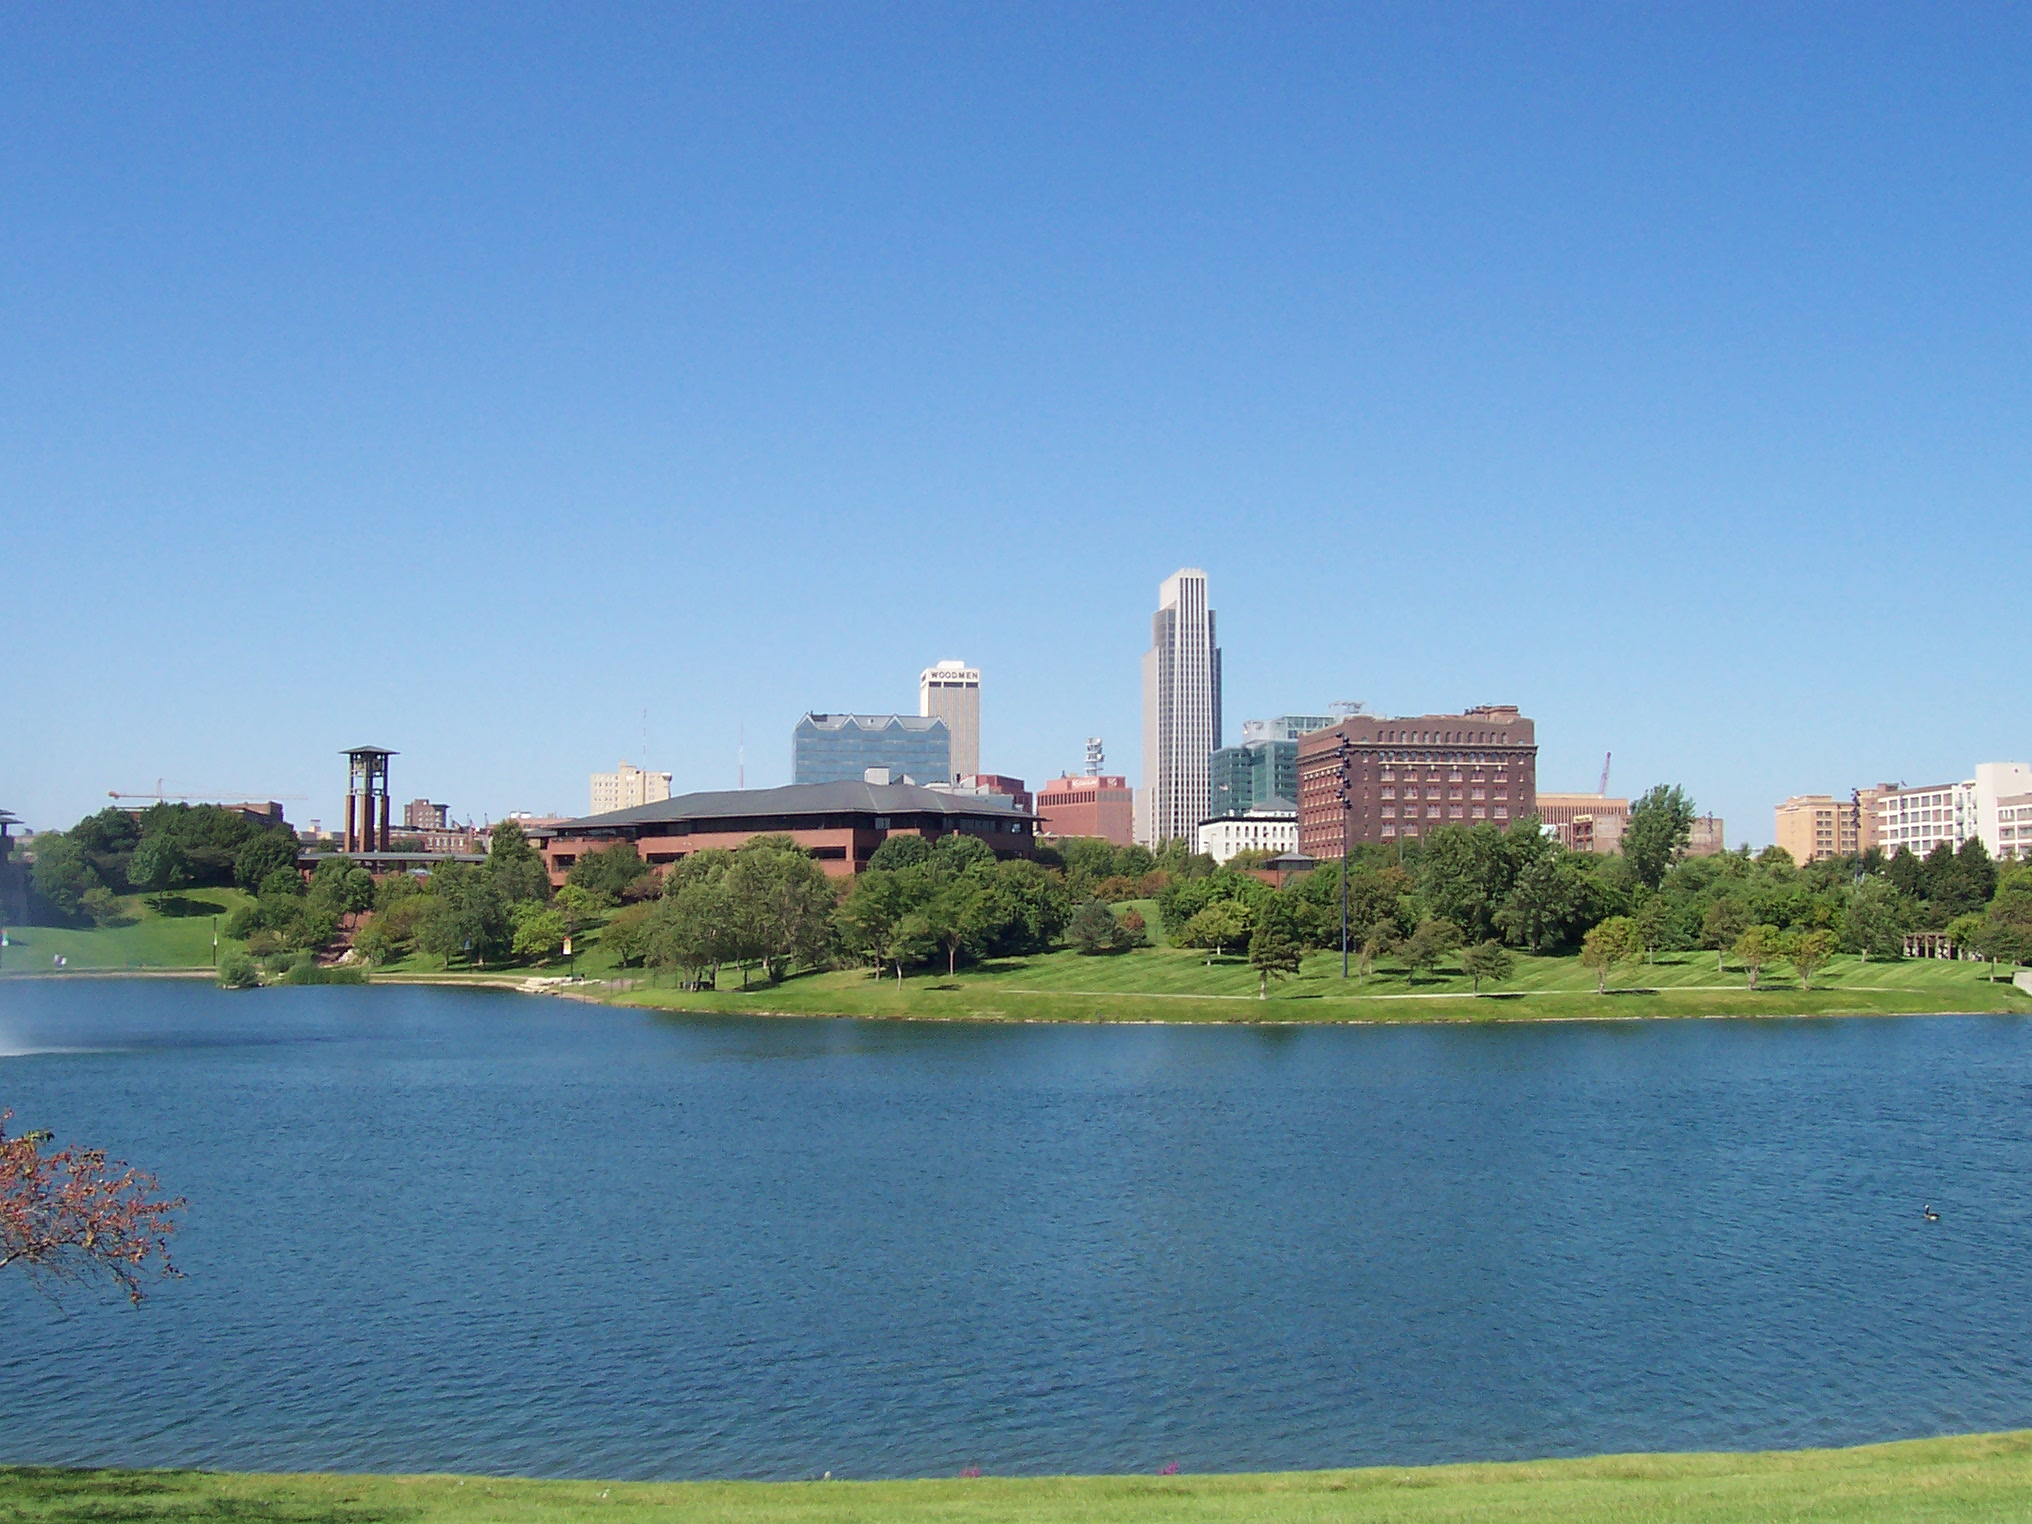 Skyline_of_the_Downtown_Omaha,_Nebraska_from_Heart